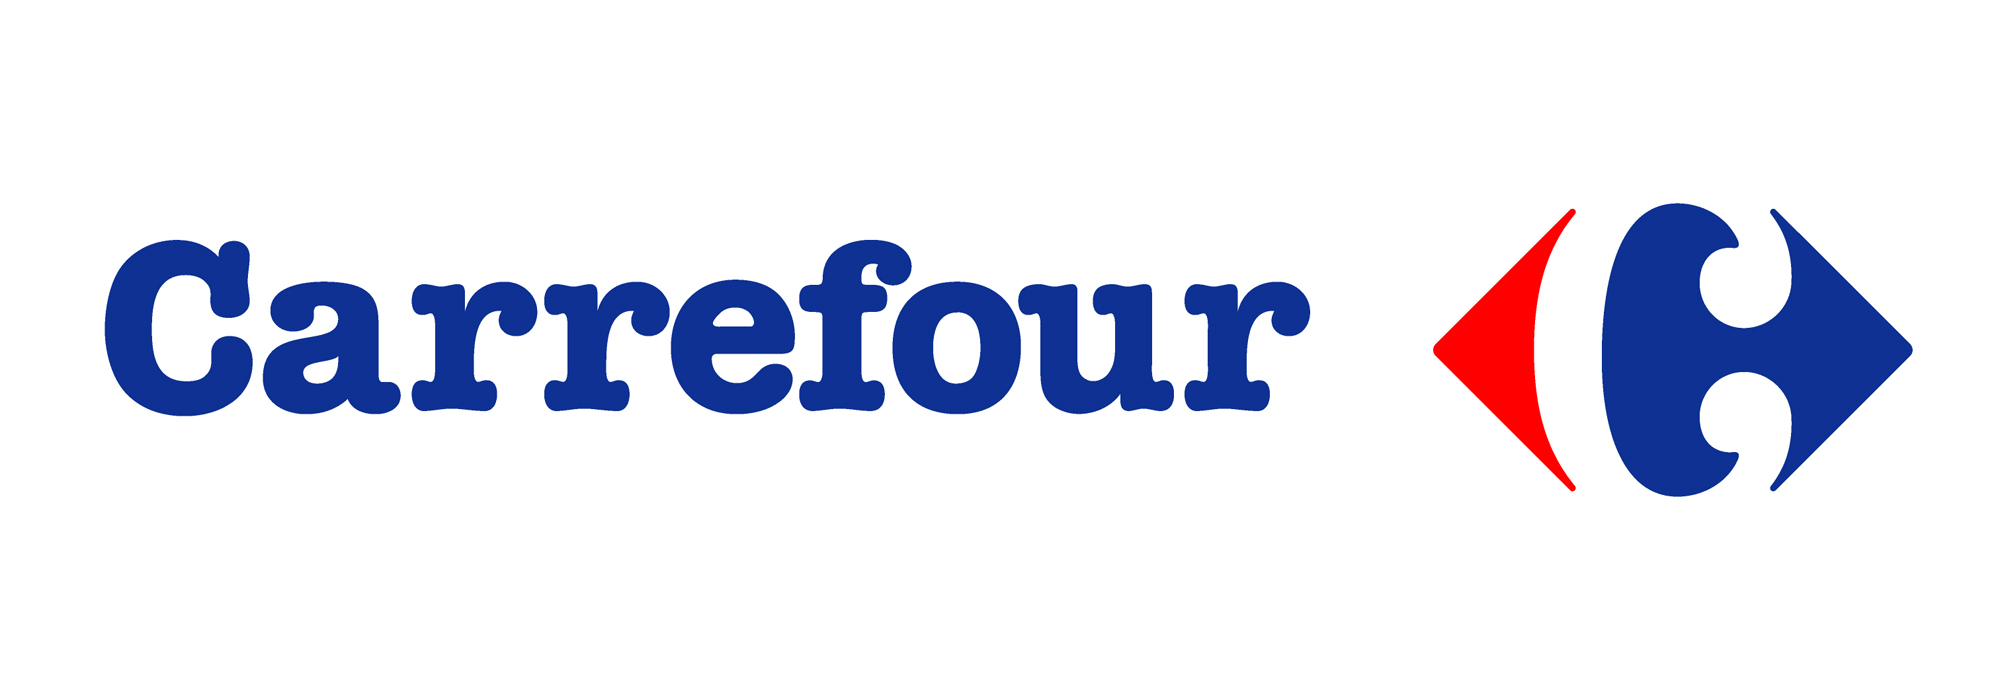 carrefour big supermarket events and guide barcelona home